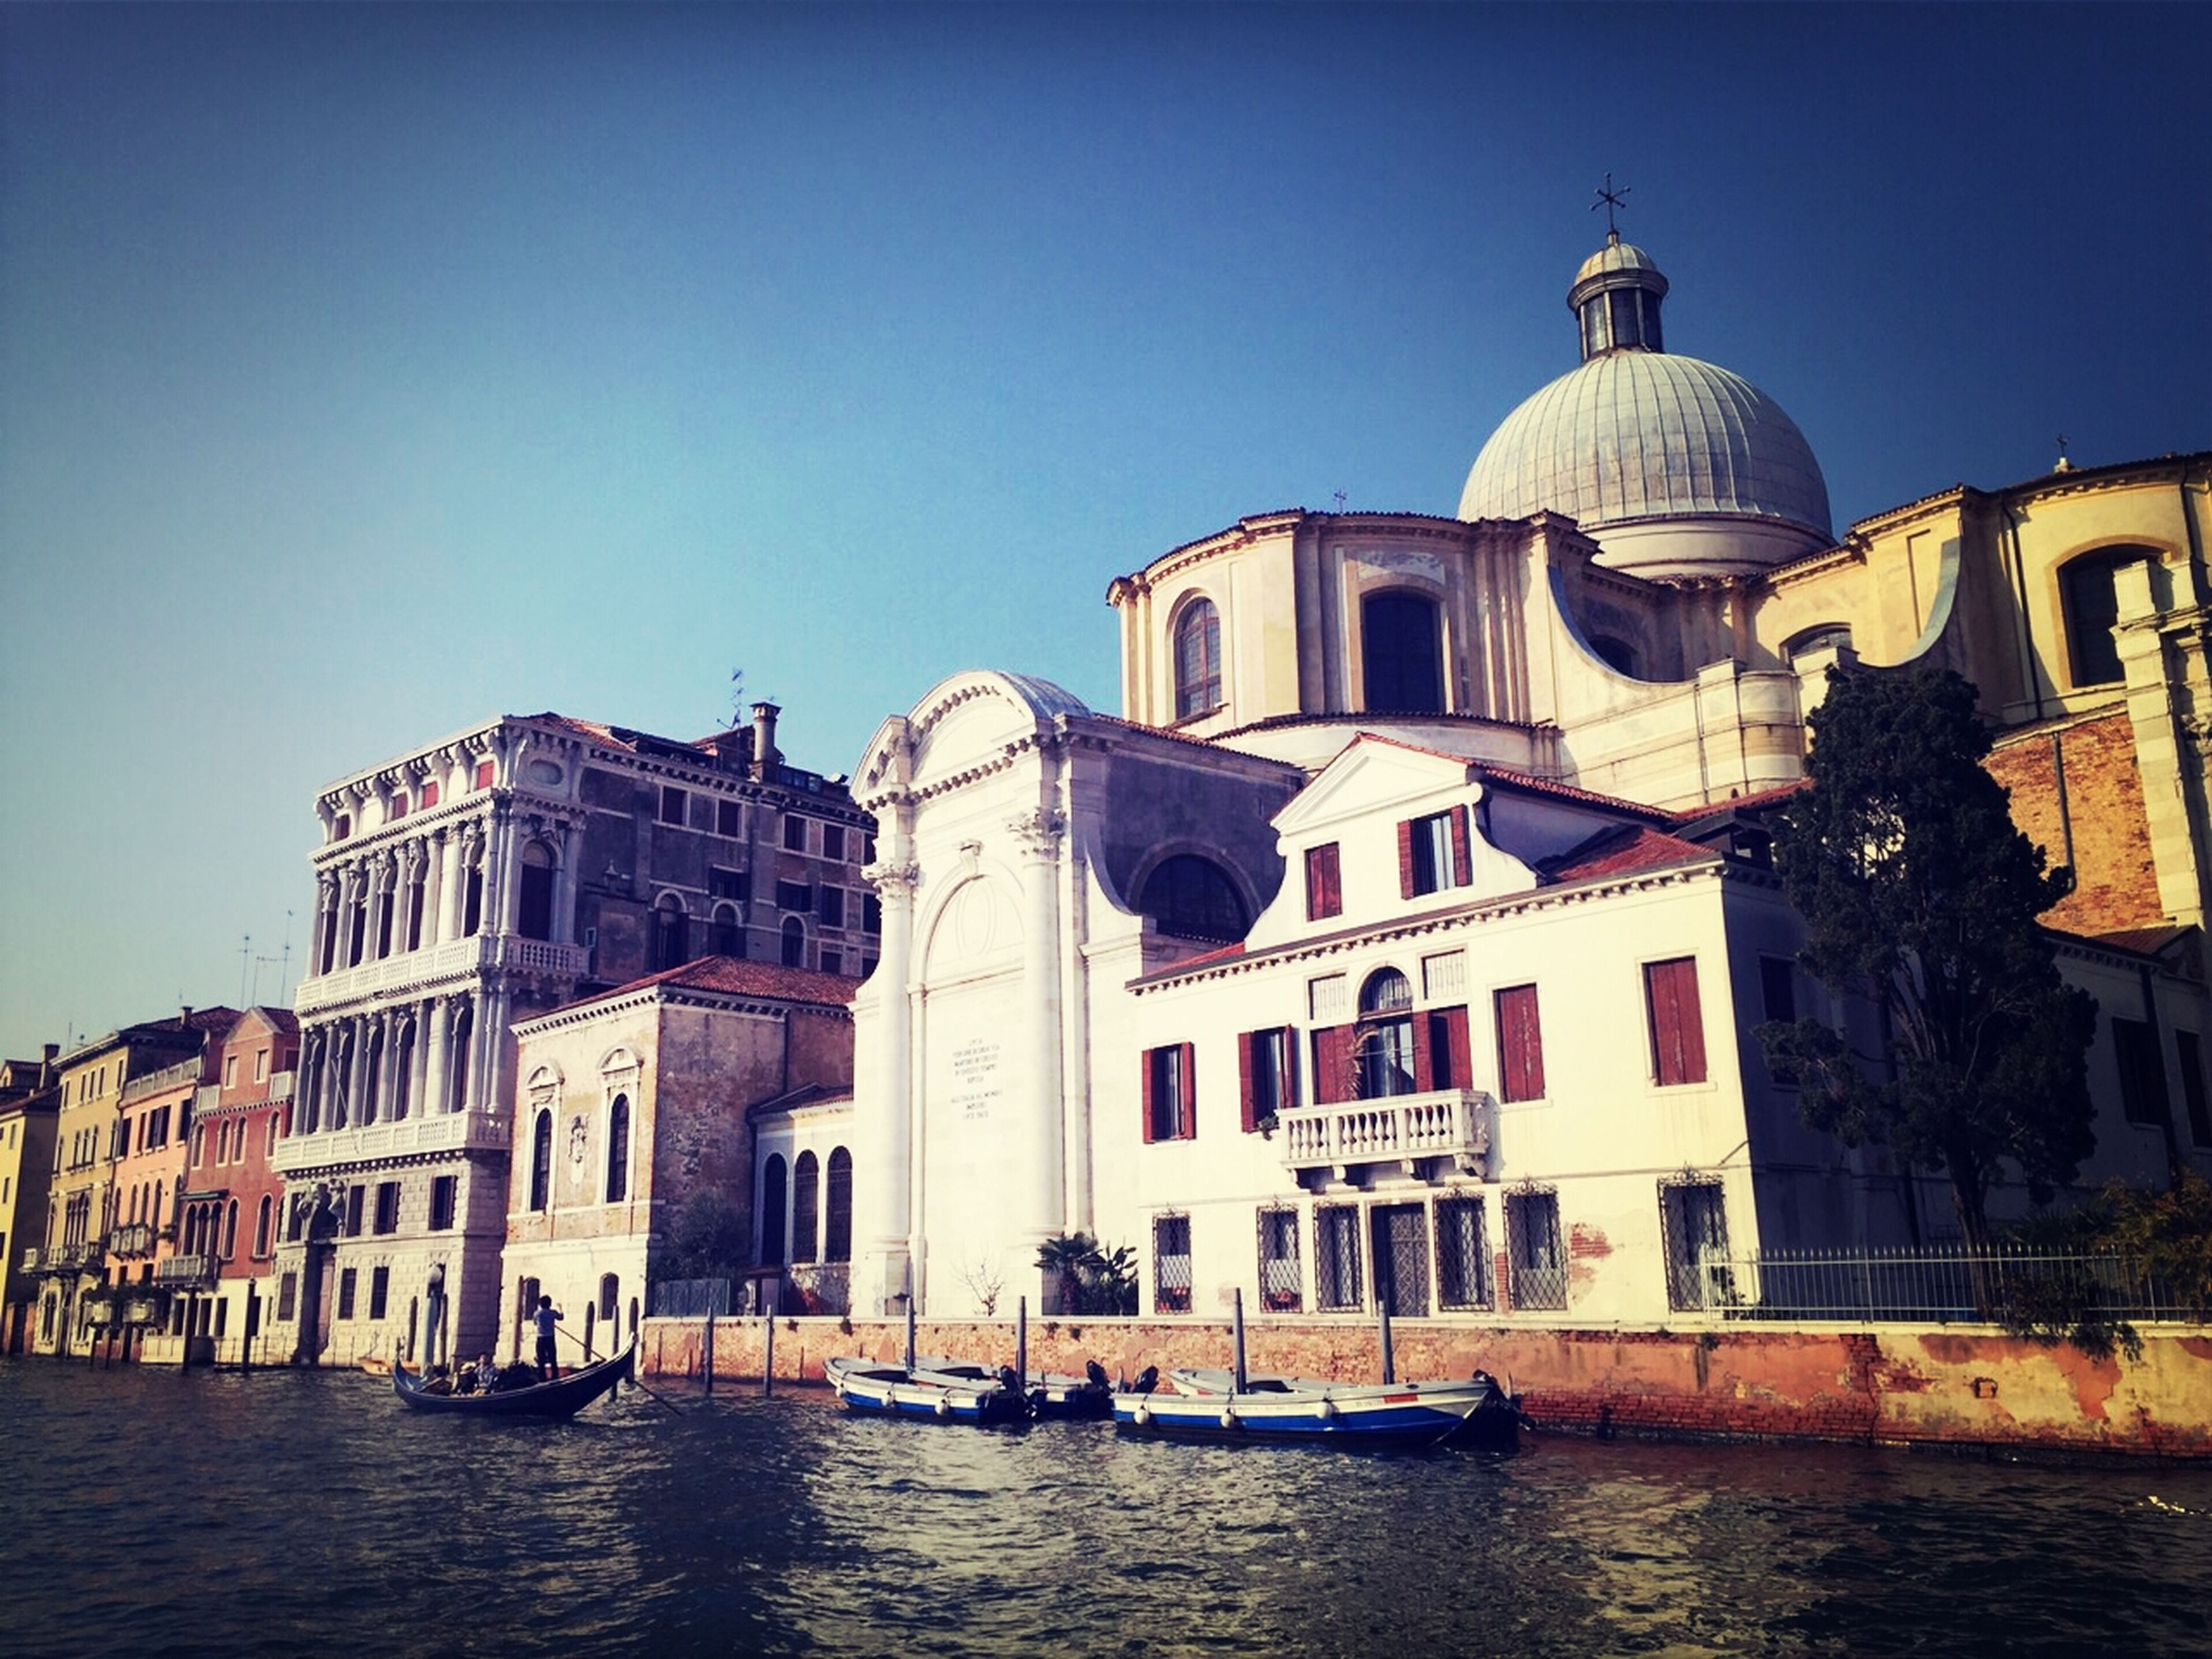 building exterior, architecture, built structure, water, waterfront, nautical vessel, clear sky, transportation, boat, mode of transport, dome, church, canal, blue, old town, residential structure, sea, religion, residential building, city